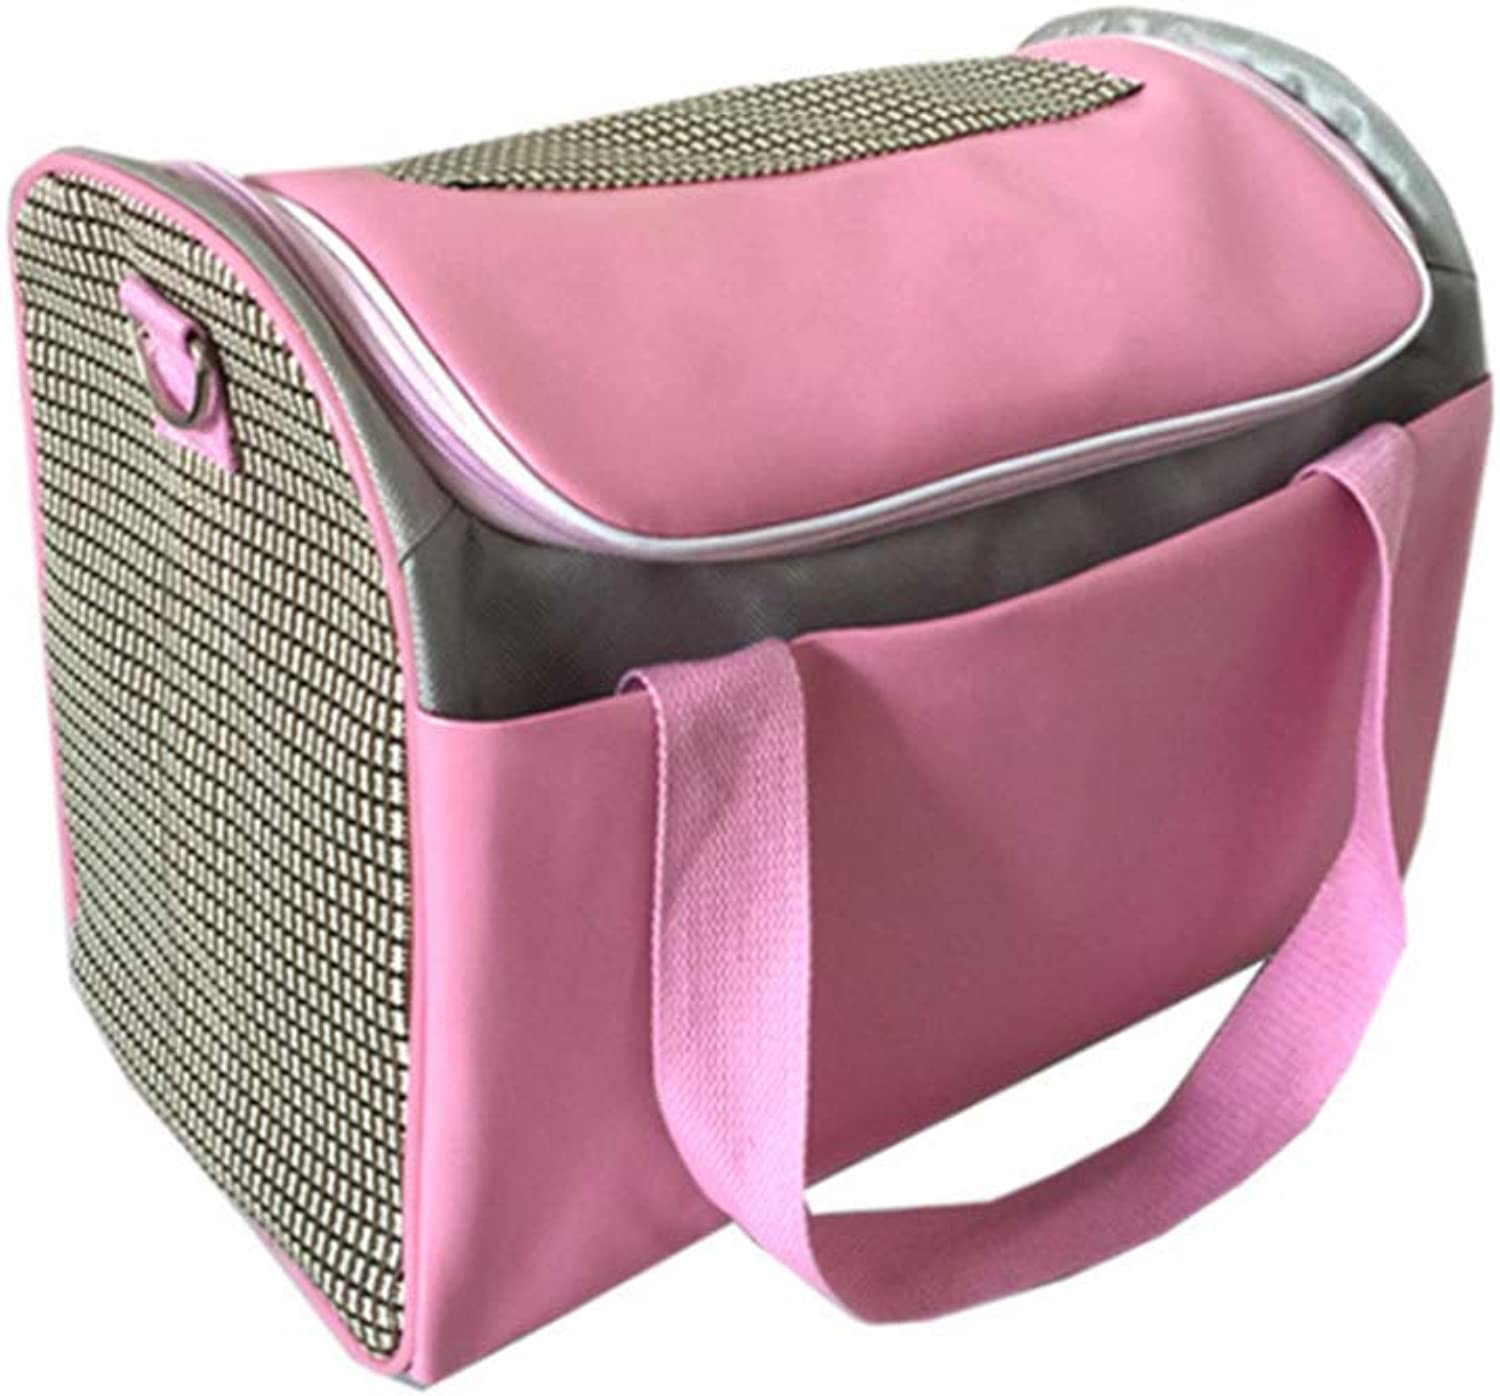 Pet Backpack Airline Approved Pet Carriers Single Shoulder Handheld Breathable Portable Dog Bag cat cage (Pink)